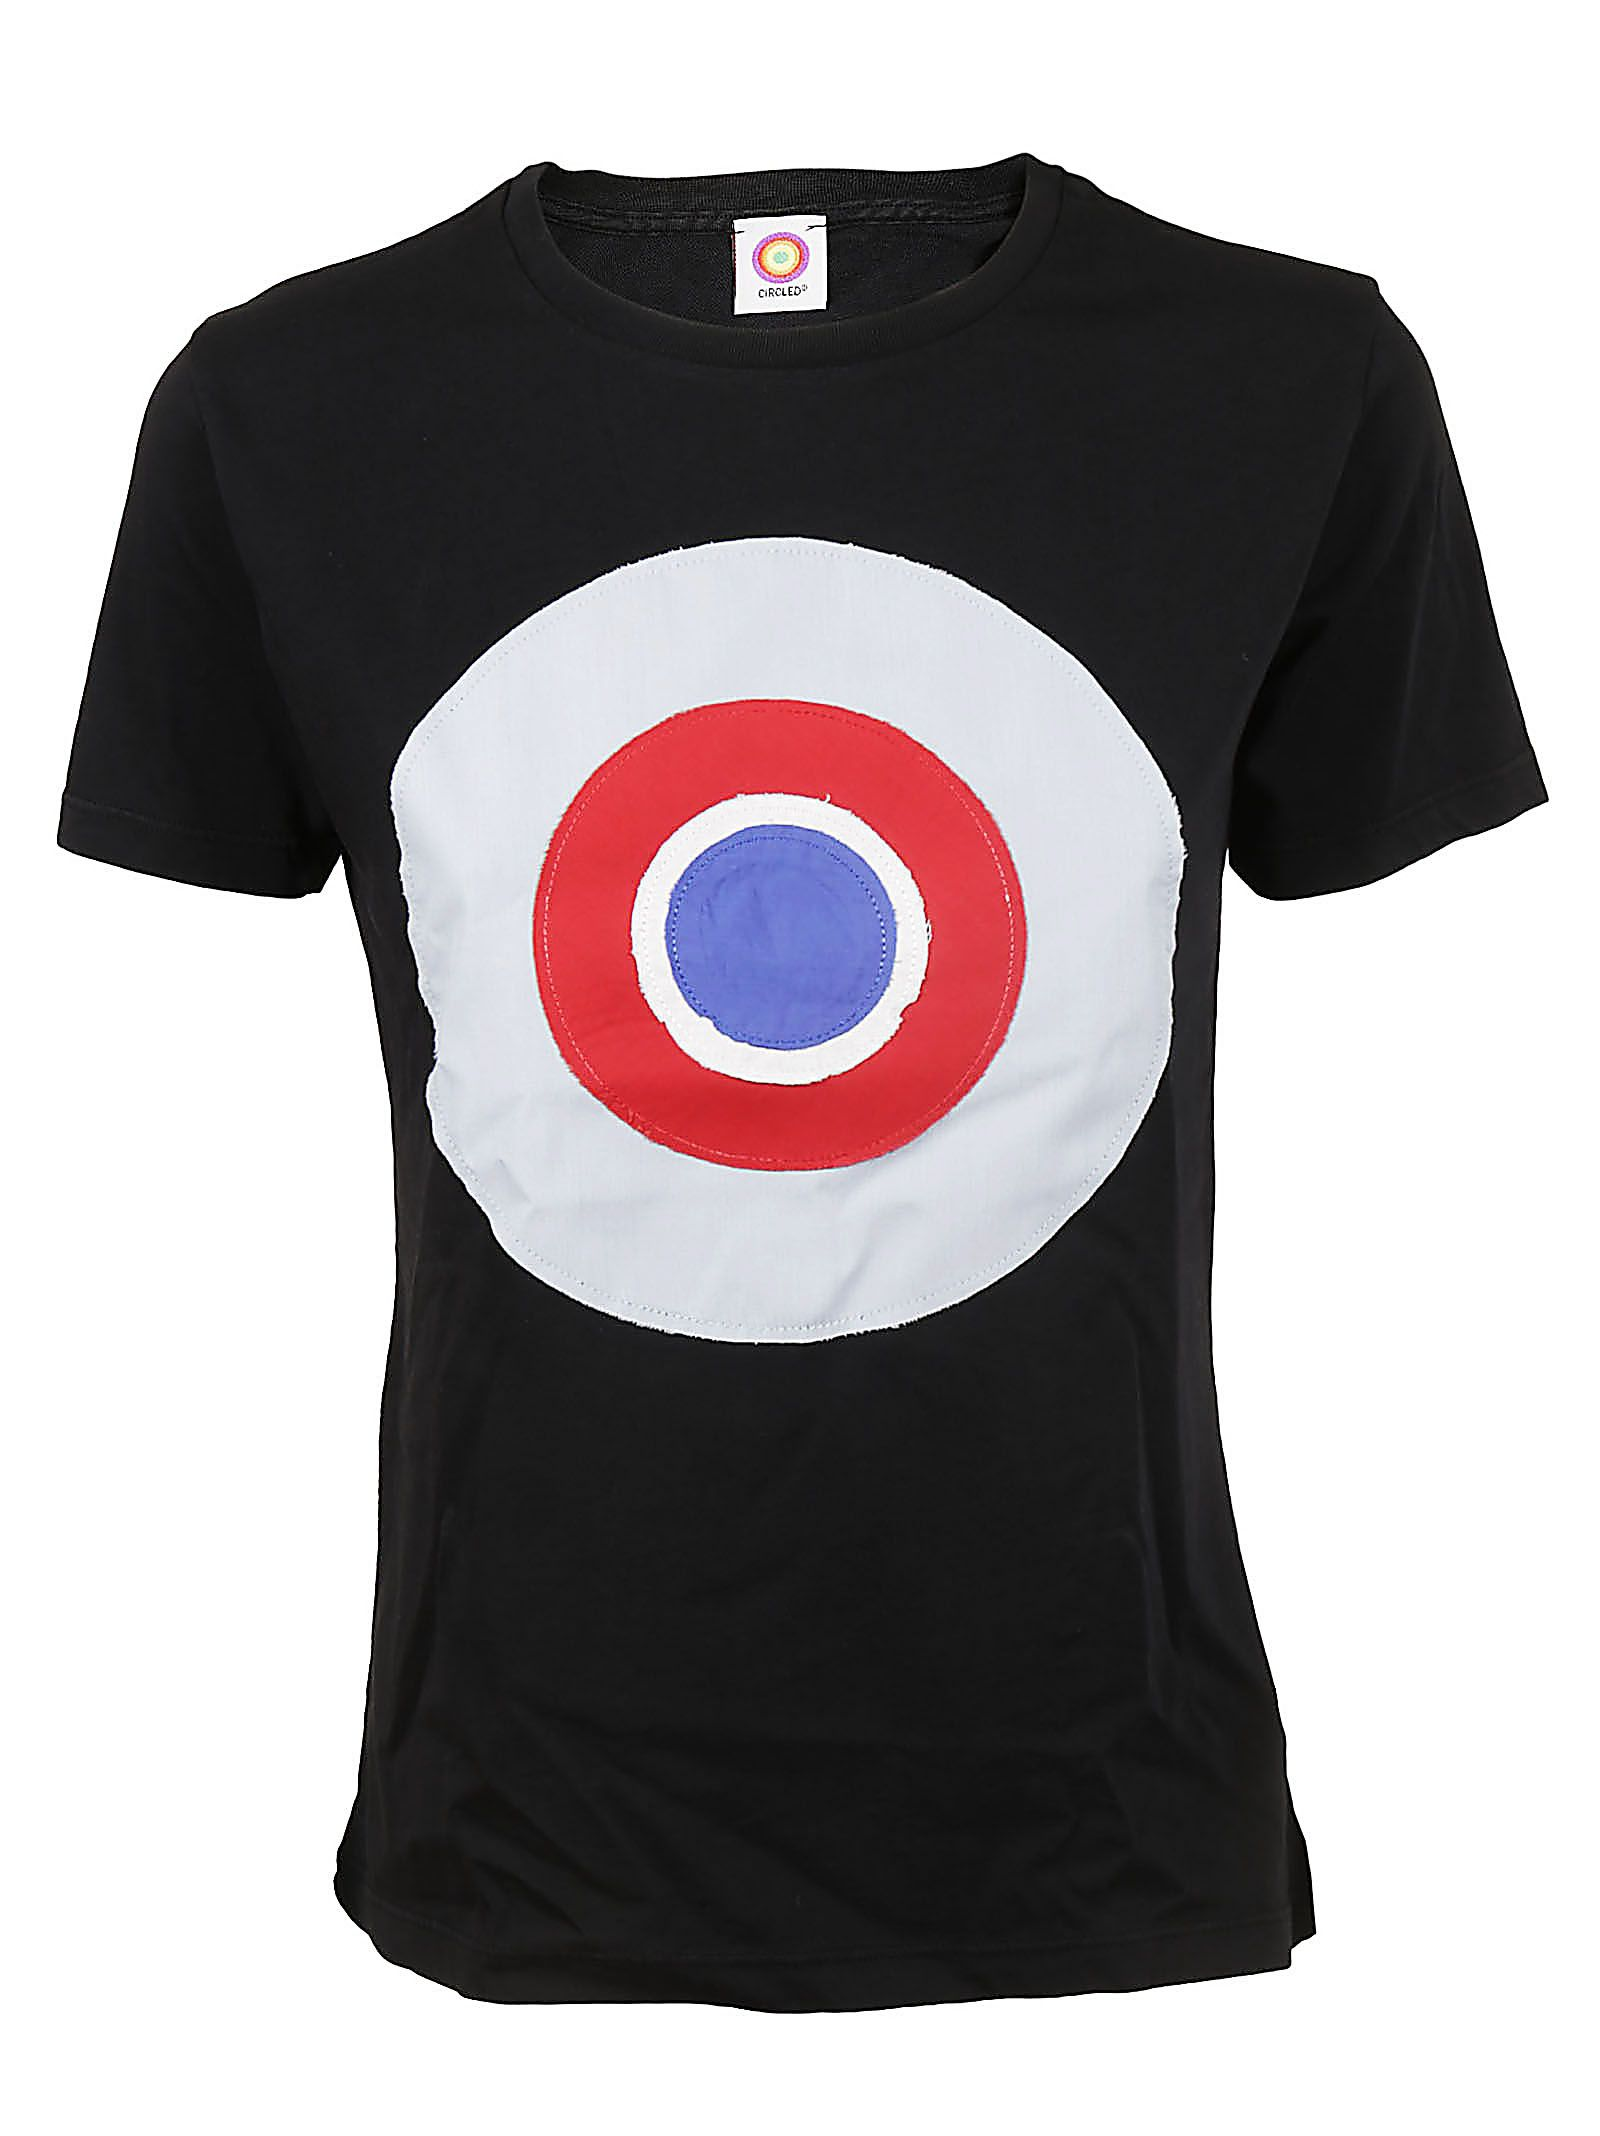 Circled Be Different Bullseye T-shirt